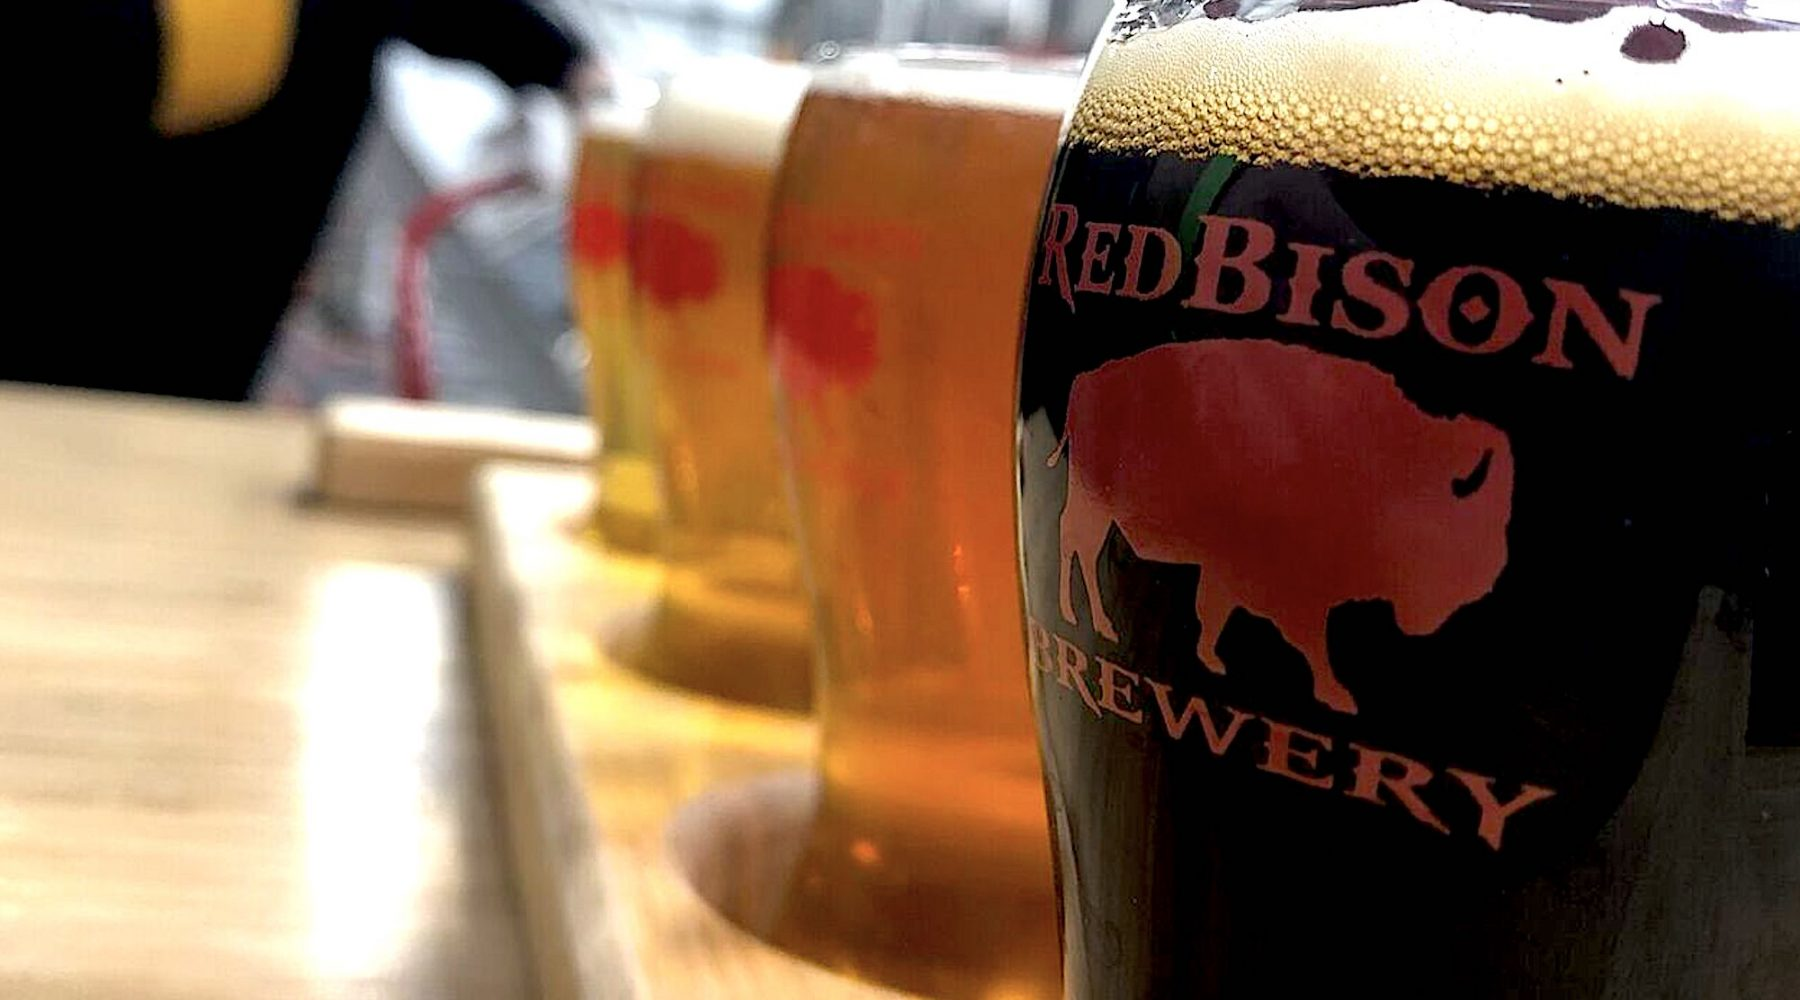 A Tour of Red Bison Brewery in Calgary, Alberta